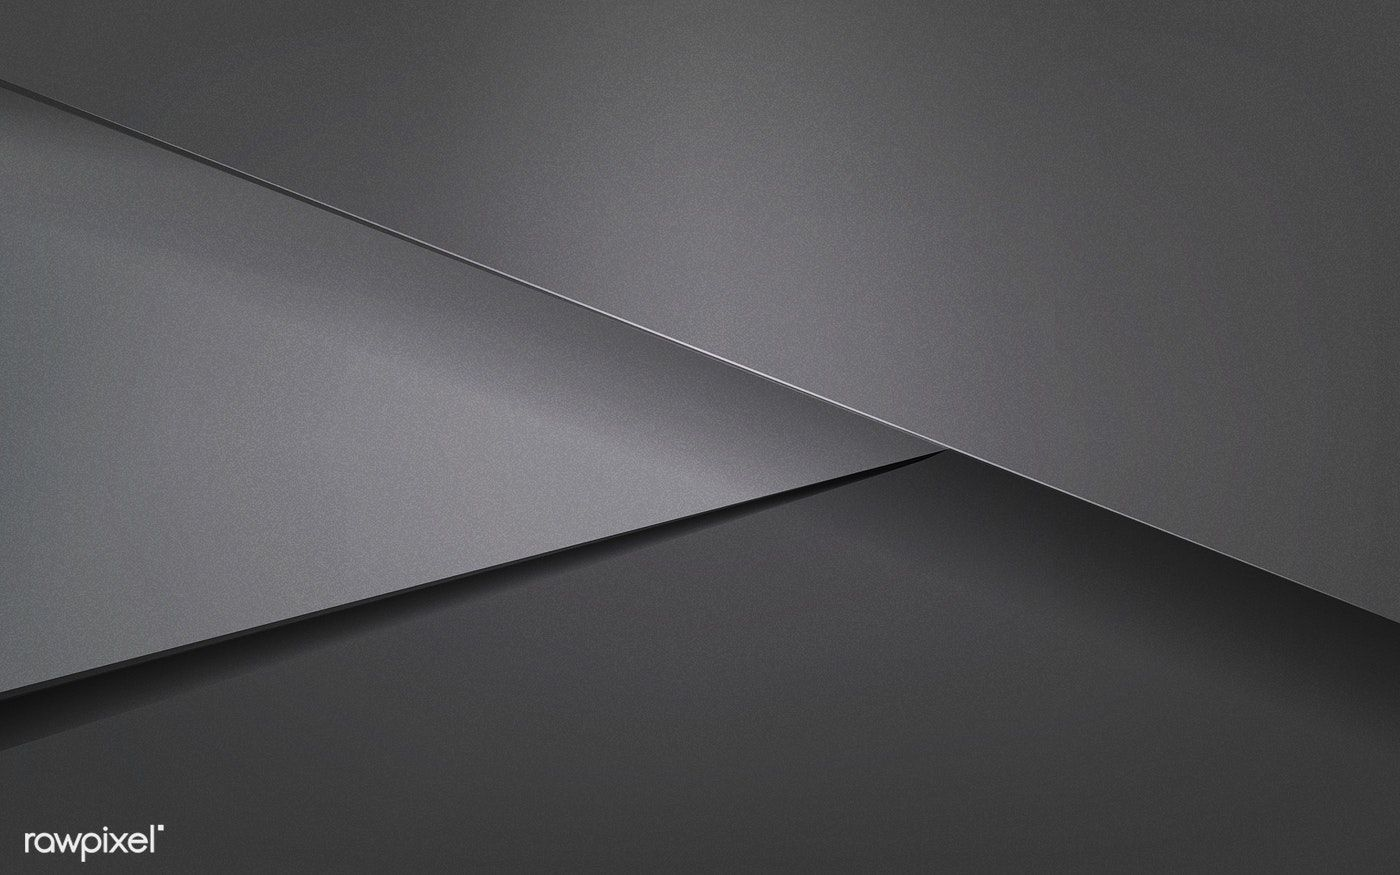 Abstract Background Design In Dark Gray Free Image By Rawpixel Com